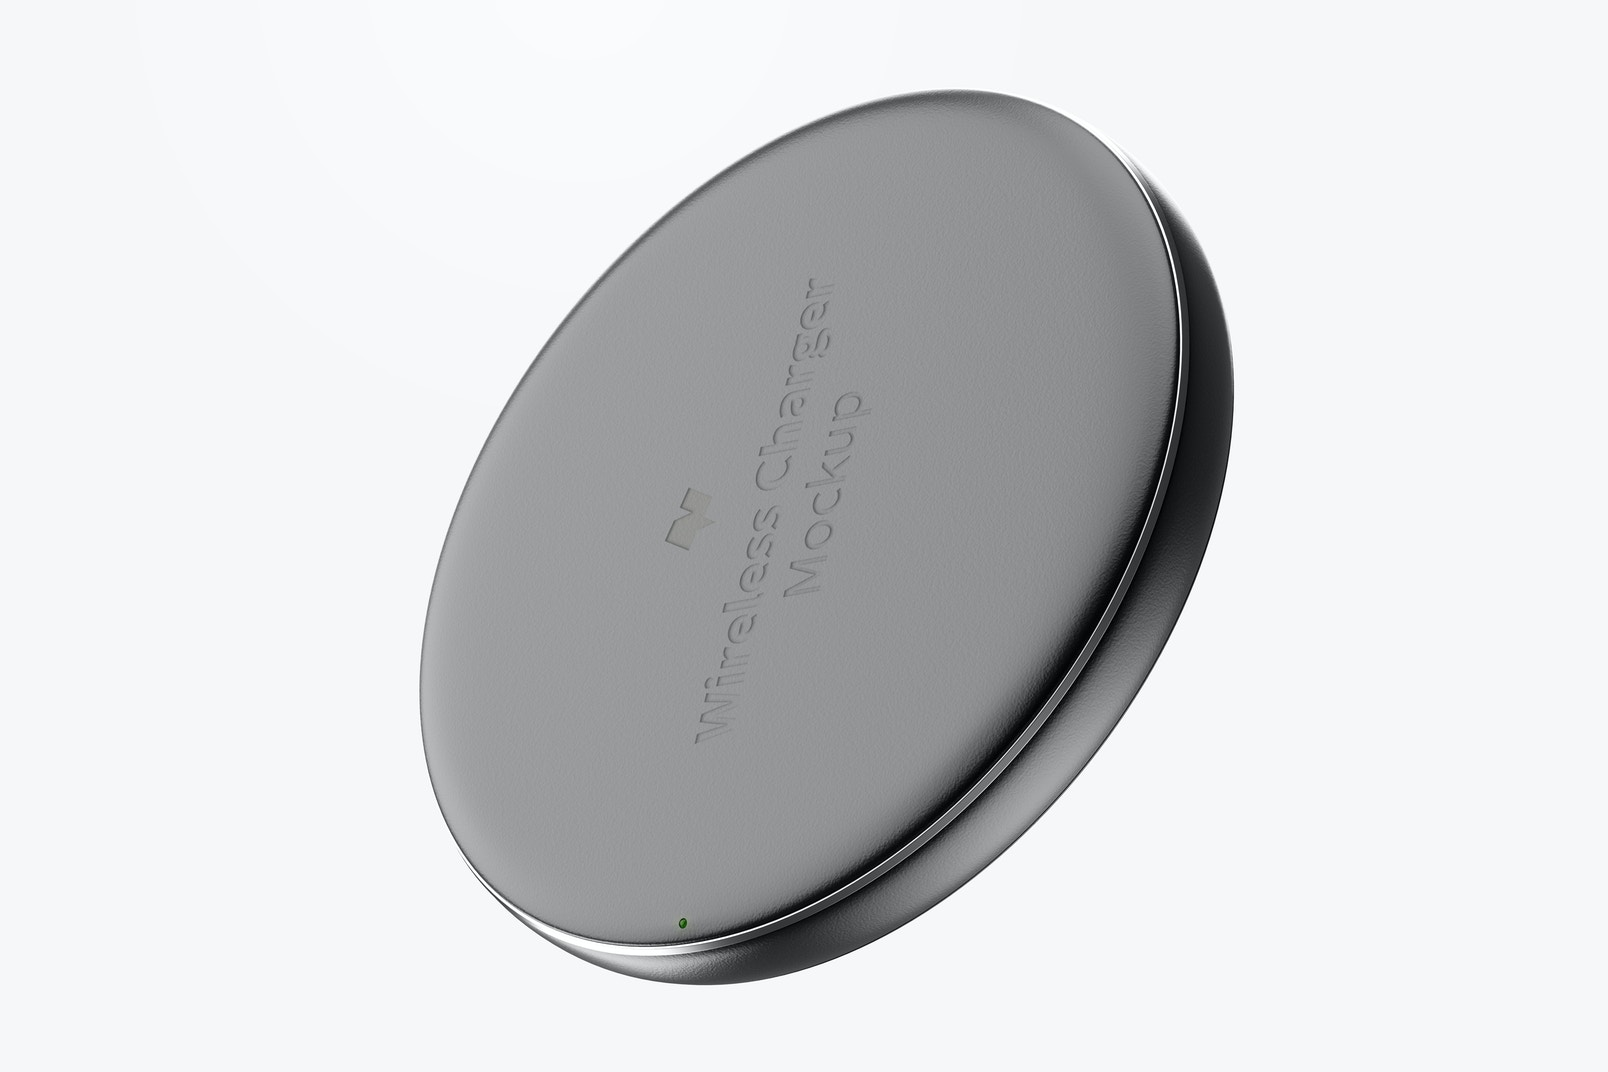 Wireless Charger Mockup, Floating